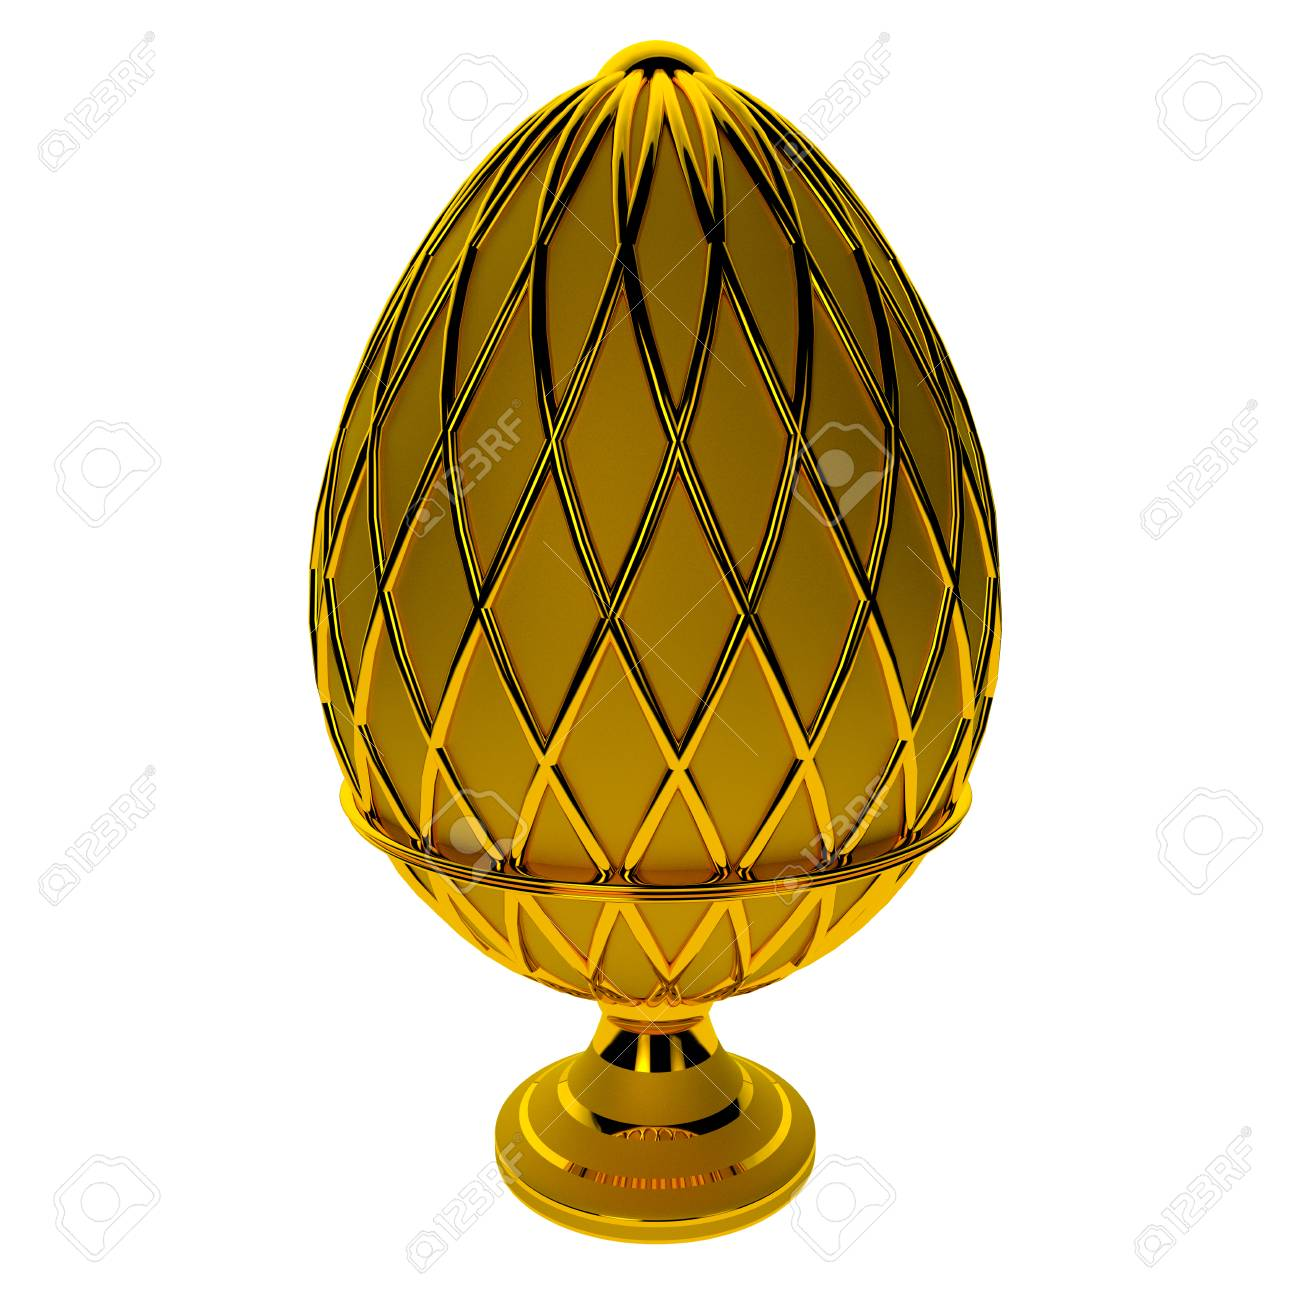 Jewelry egg. 3D render. Stock Photo - 76054663